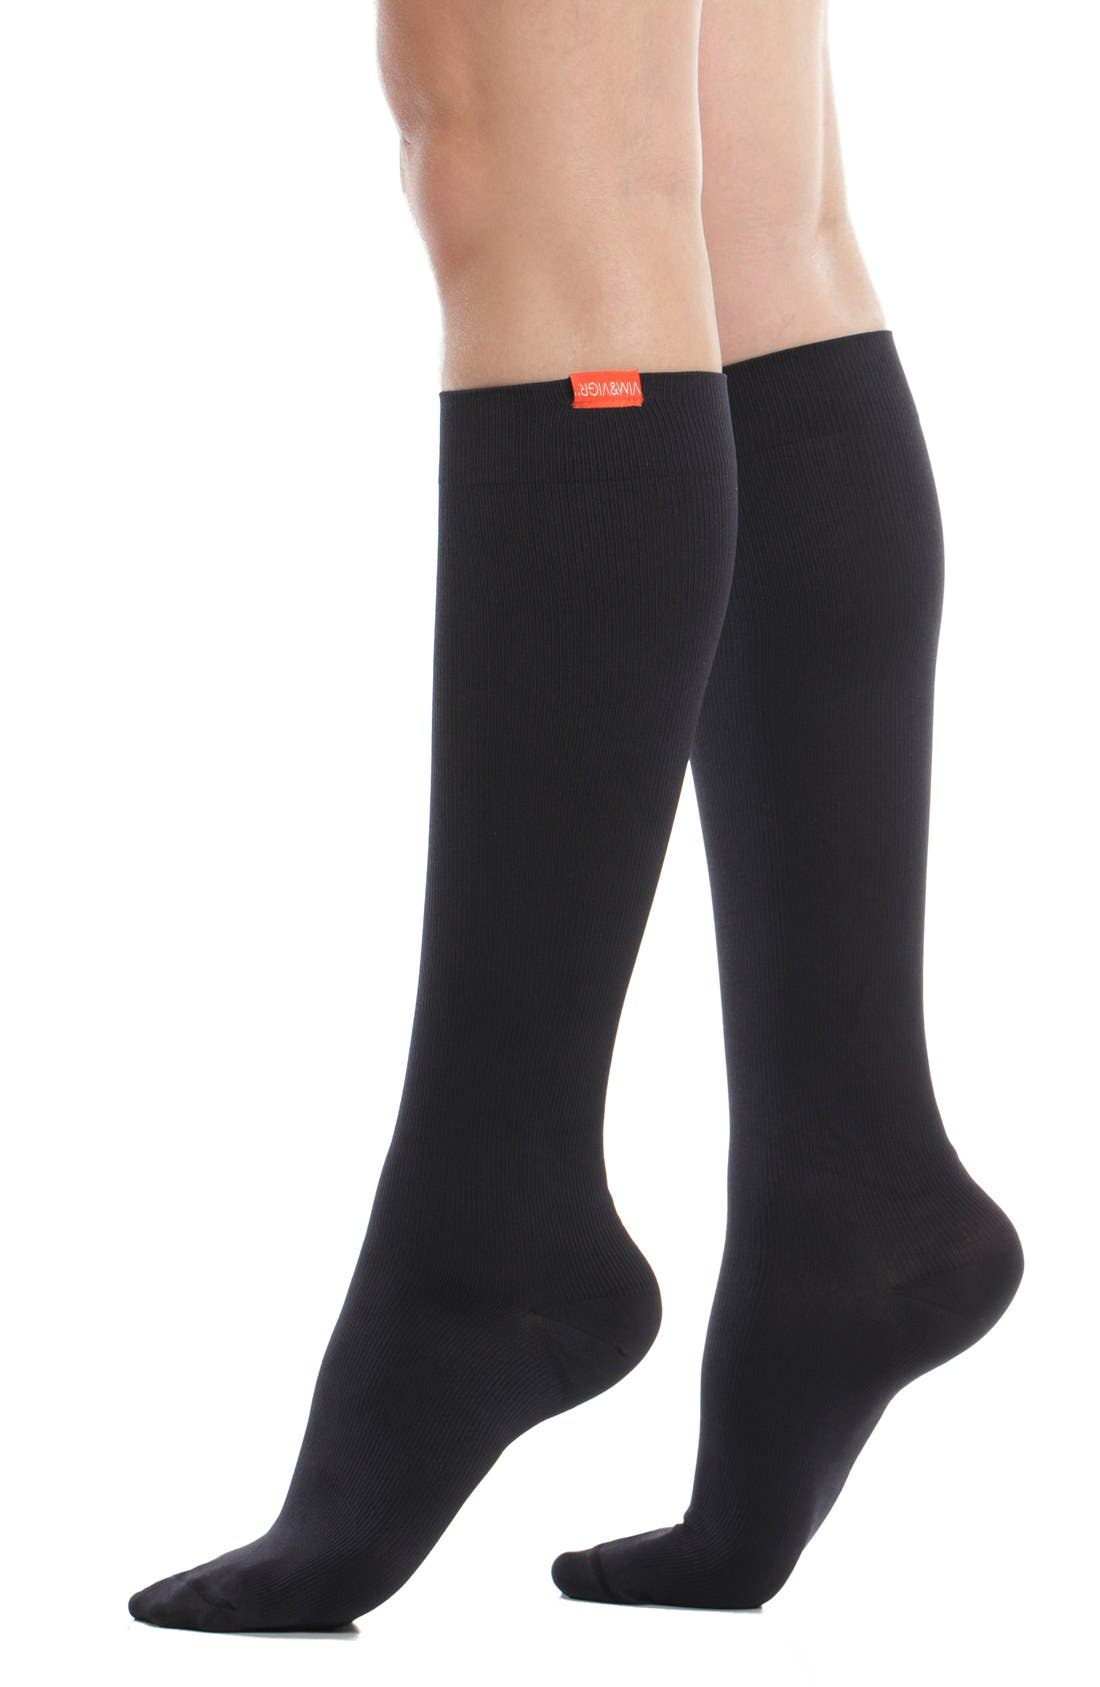 Solid Graduated Compression Trouser Socks,                             Main thumbnail 1, color,                             Black